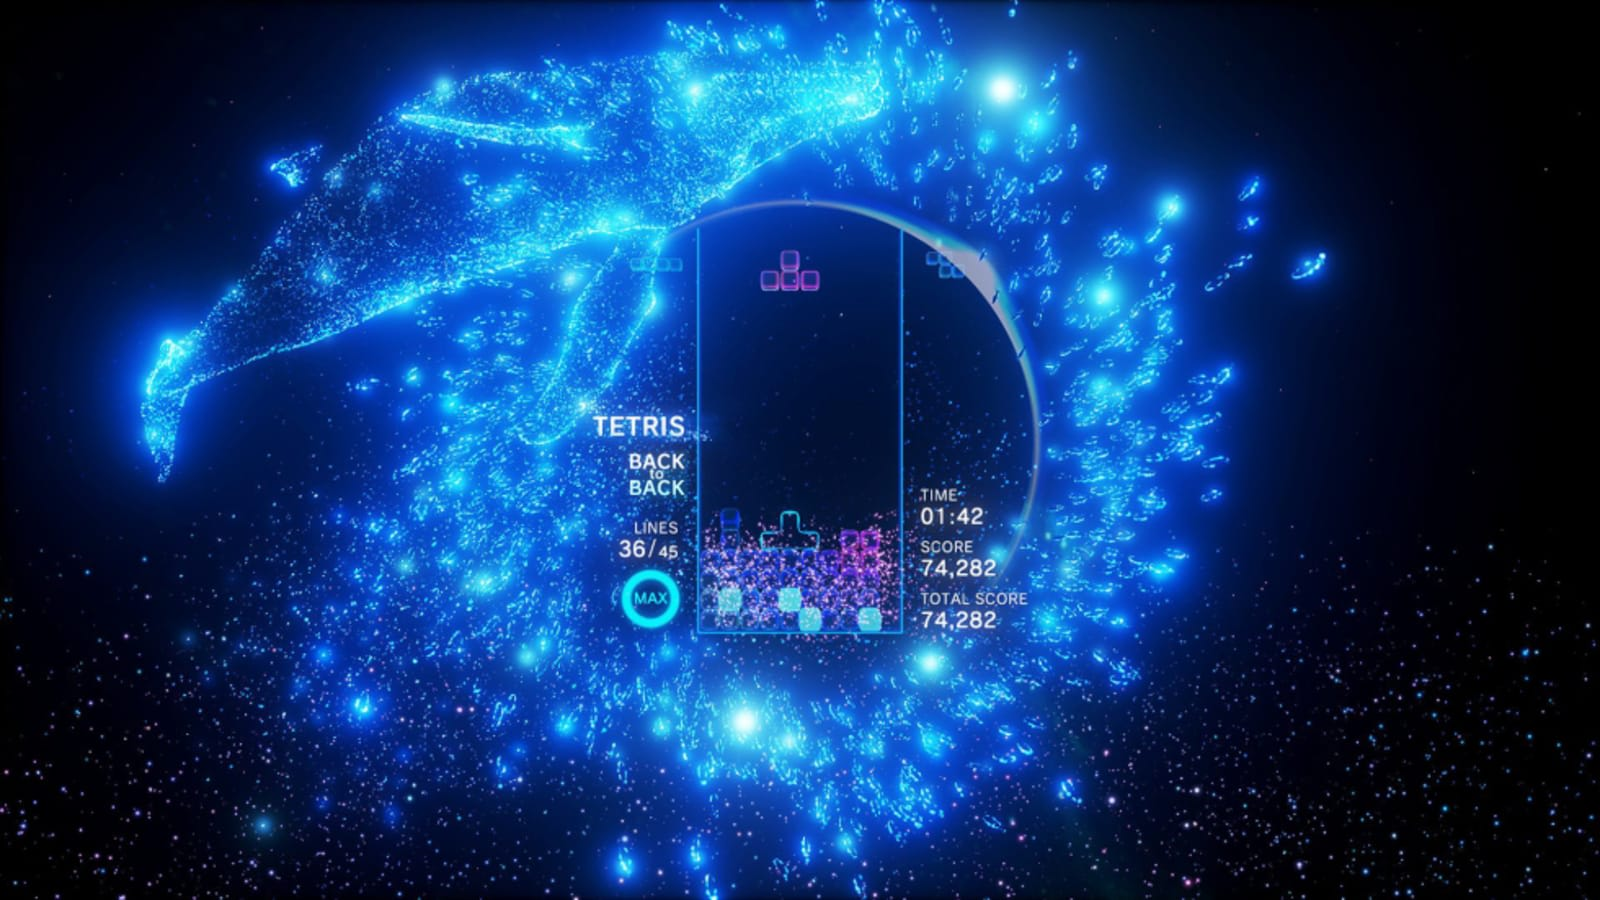 'Tetris Effect' brings its VR head trip to PCs on July 23rd